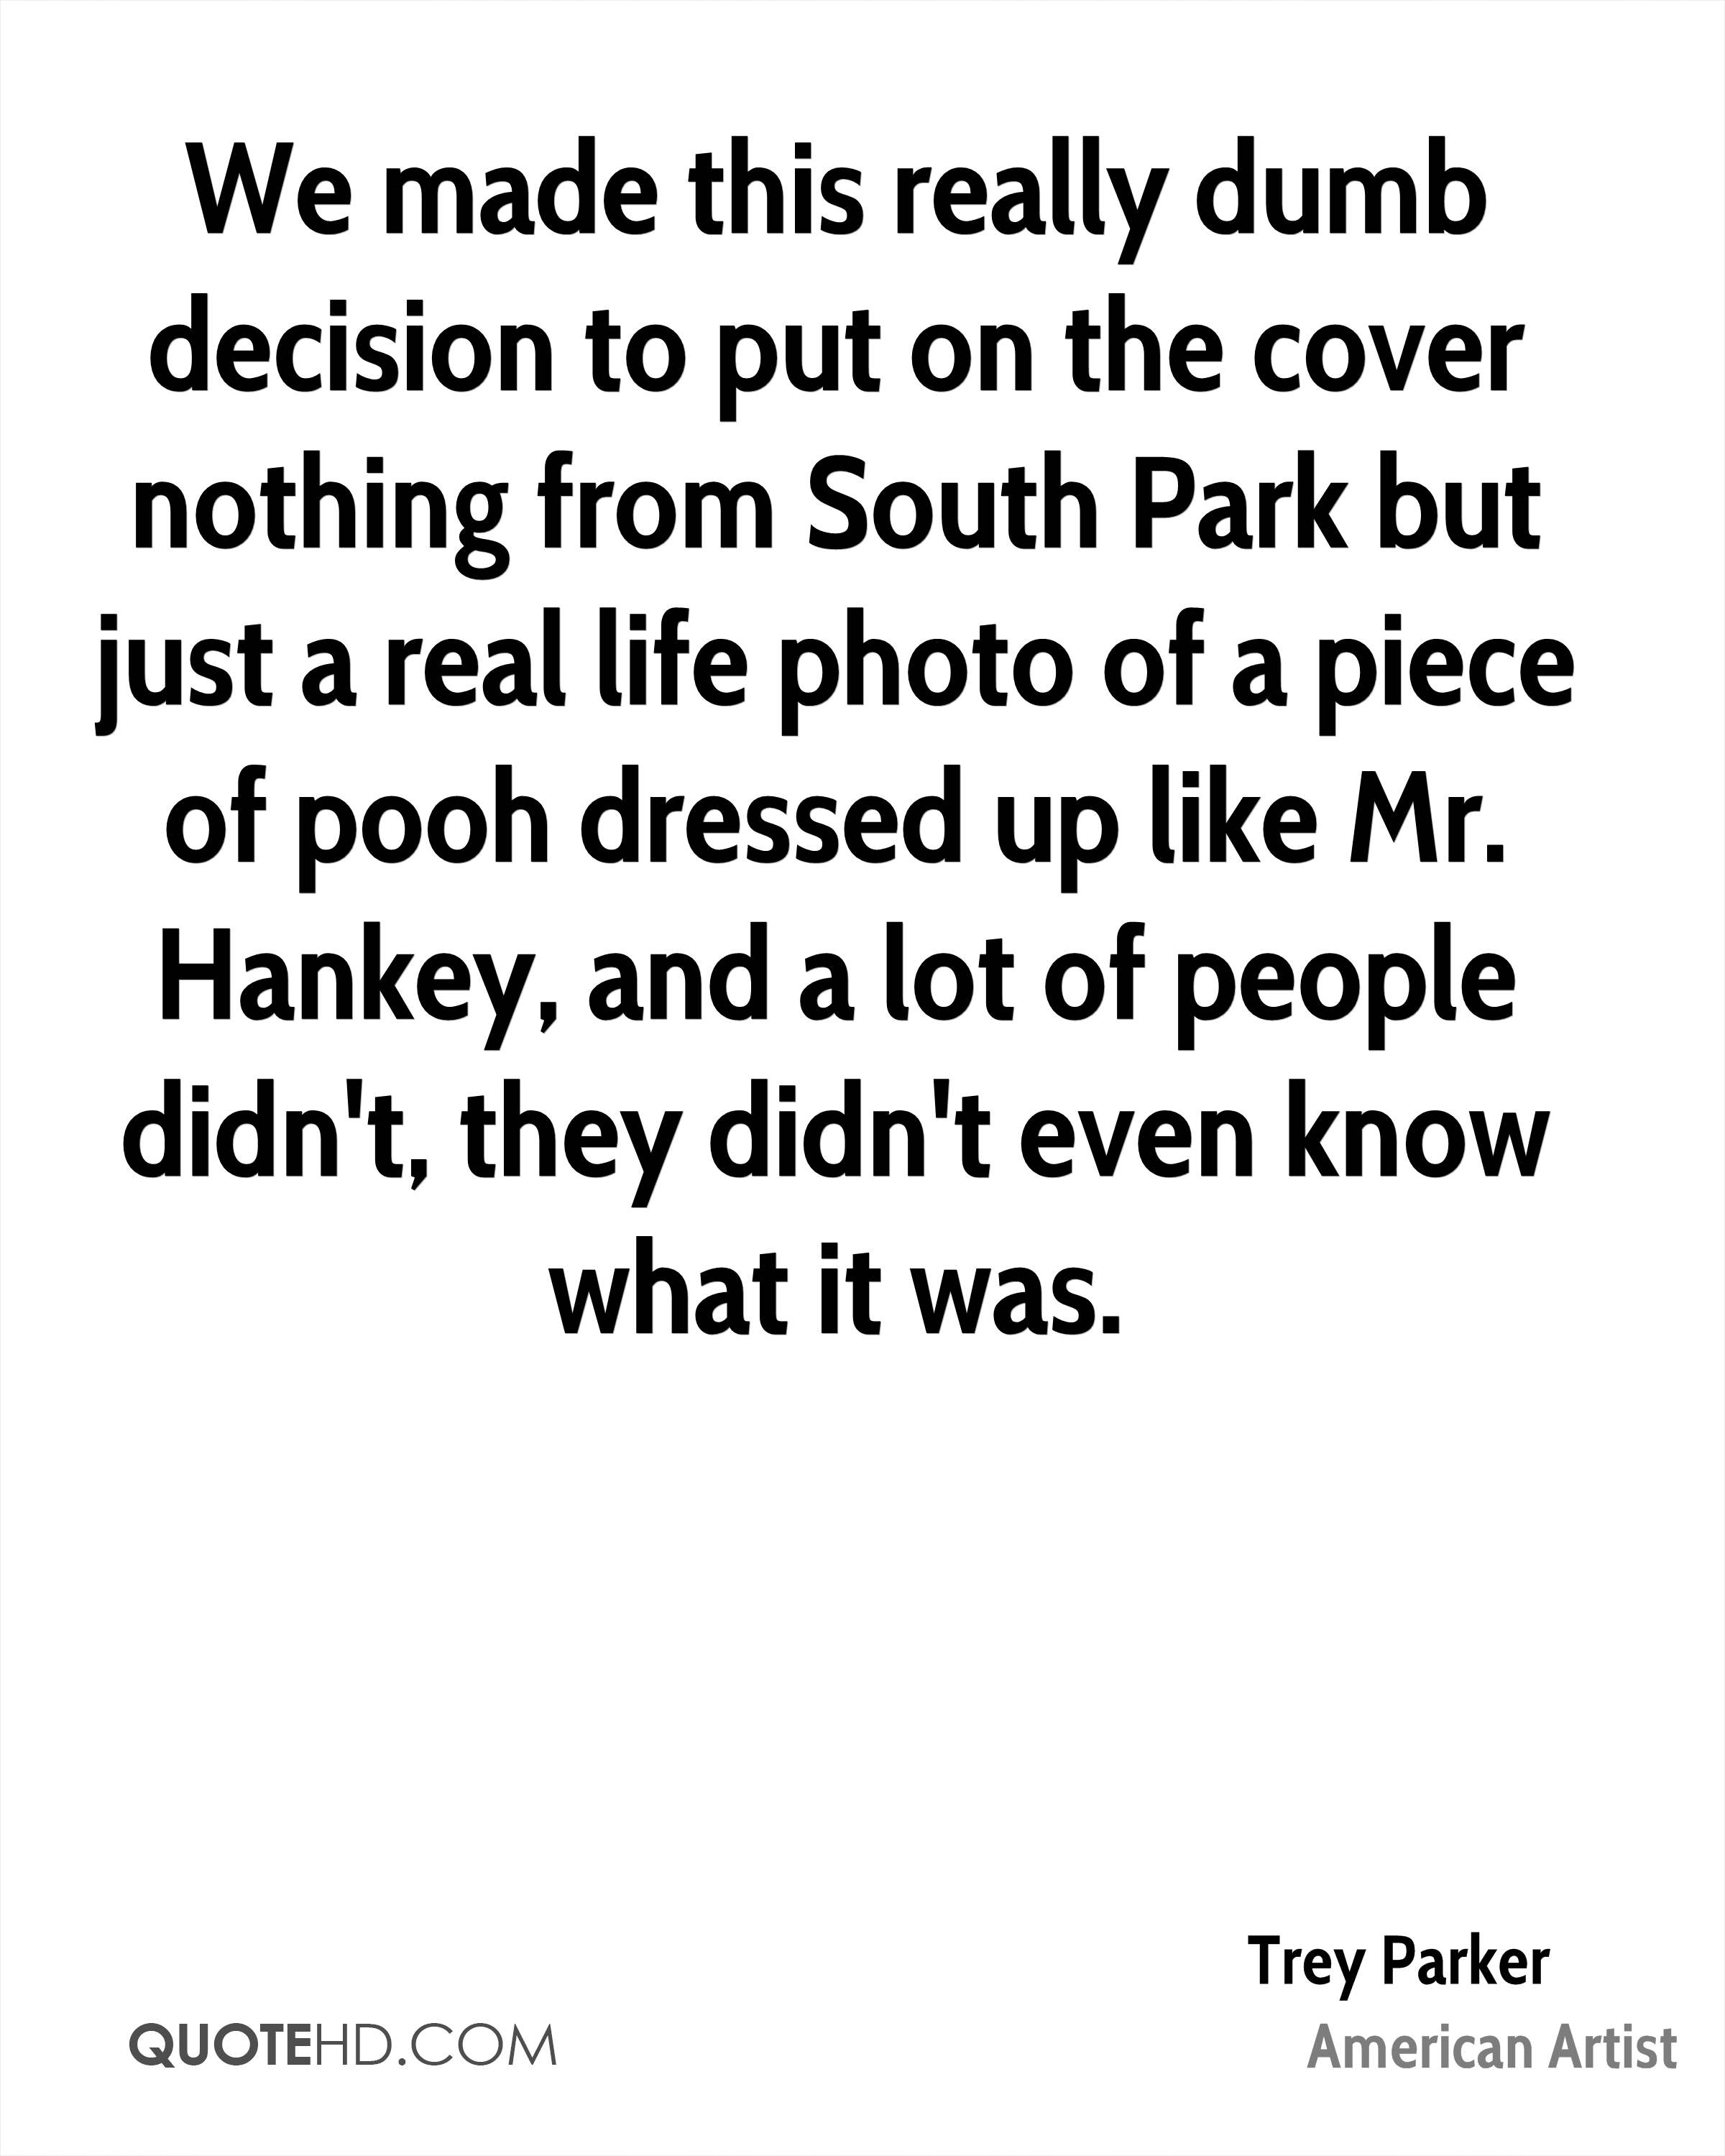 We made this really dumb decision to put on the cover nothing from South Park but just a real life photo of a piece of pooh dressed up like Mr. Hankey, and a lot of people didn't, they didn't even know what it was.